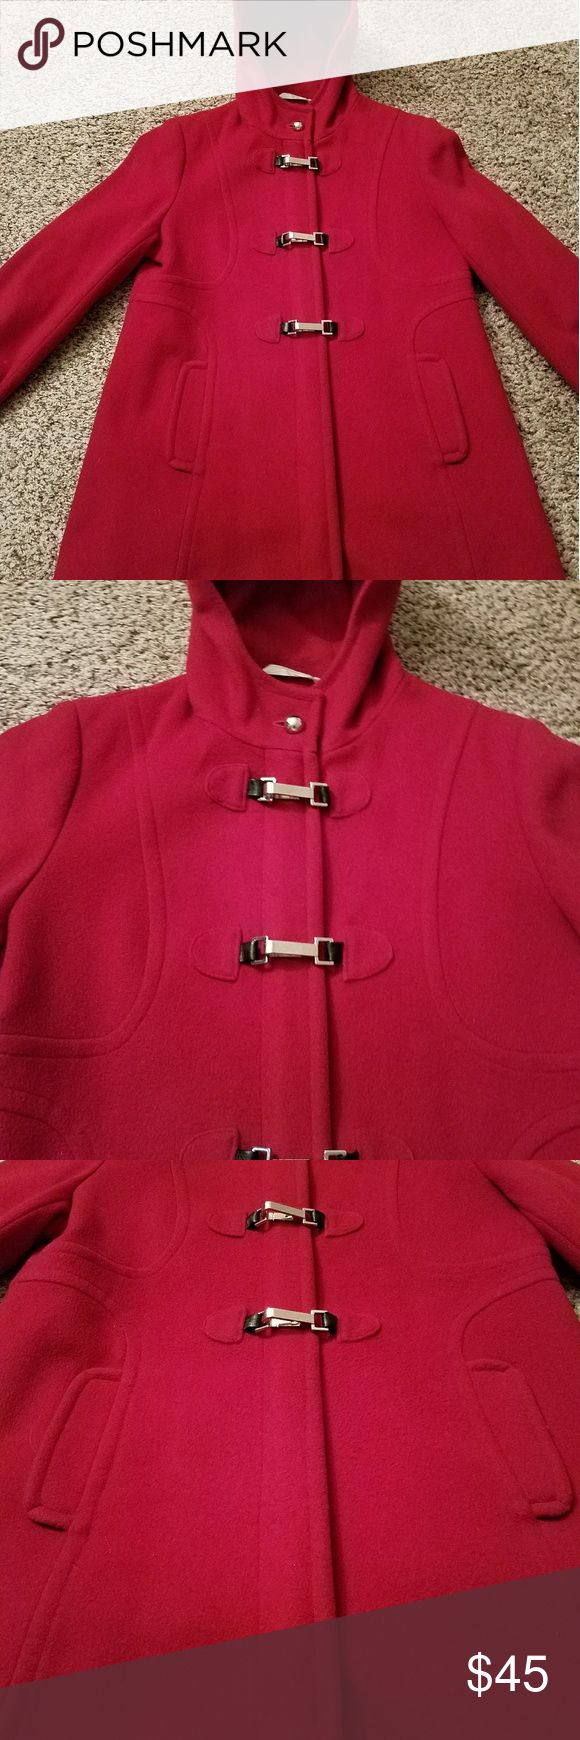 🌷🌷🌷LARRY LEVINE WOOL COAT 🌷🌷🌷 🌷🌷🌷BEAUTIFUL RED LARRY LEVINE WOMEN'S WOOL COAT. GENTLY WORN ONLY HANDFUL OF TIMES. IN GORGEOUS CONDITION. RED COLOR WITH FULL ZIP UP FRONT. ALSO HAS SILVER BUCKLE CLOSES IN FRONT WITH BLACK ACCENTS. SILVER BUTTONS ON SLEEVES AND TOP OF NECK CLOSURE. ZIPPER FULLY WORKS WITH NO. PROBLEMS. THIS IS A GREAT COAT TO KEEP WARM IN THE WINTER AND GO OUT IN STYLE. WILL MAKE ANY OUTFIT EXTRA CHIC AND CLASSY. FROM A SMOKE FREE AND PET FREE HOME. SIZE 14. Larry…